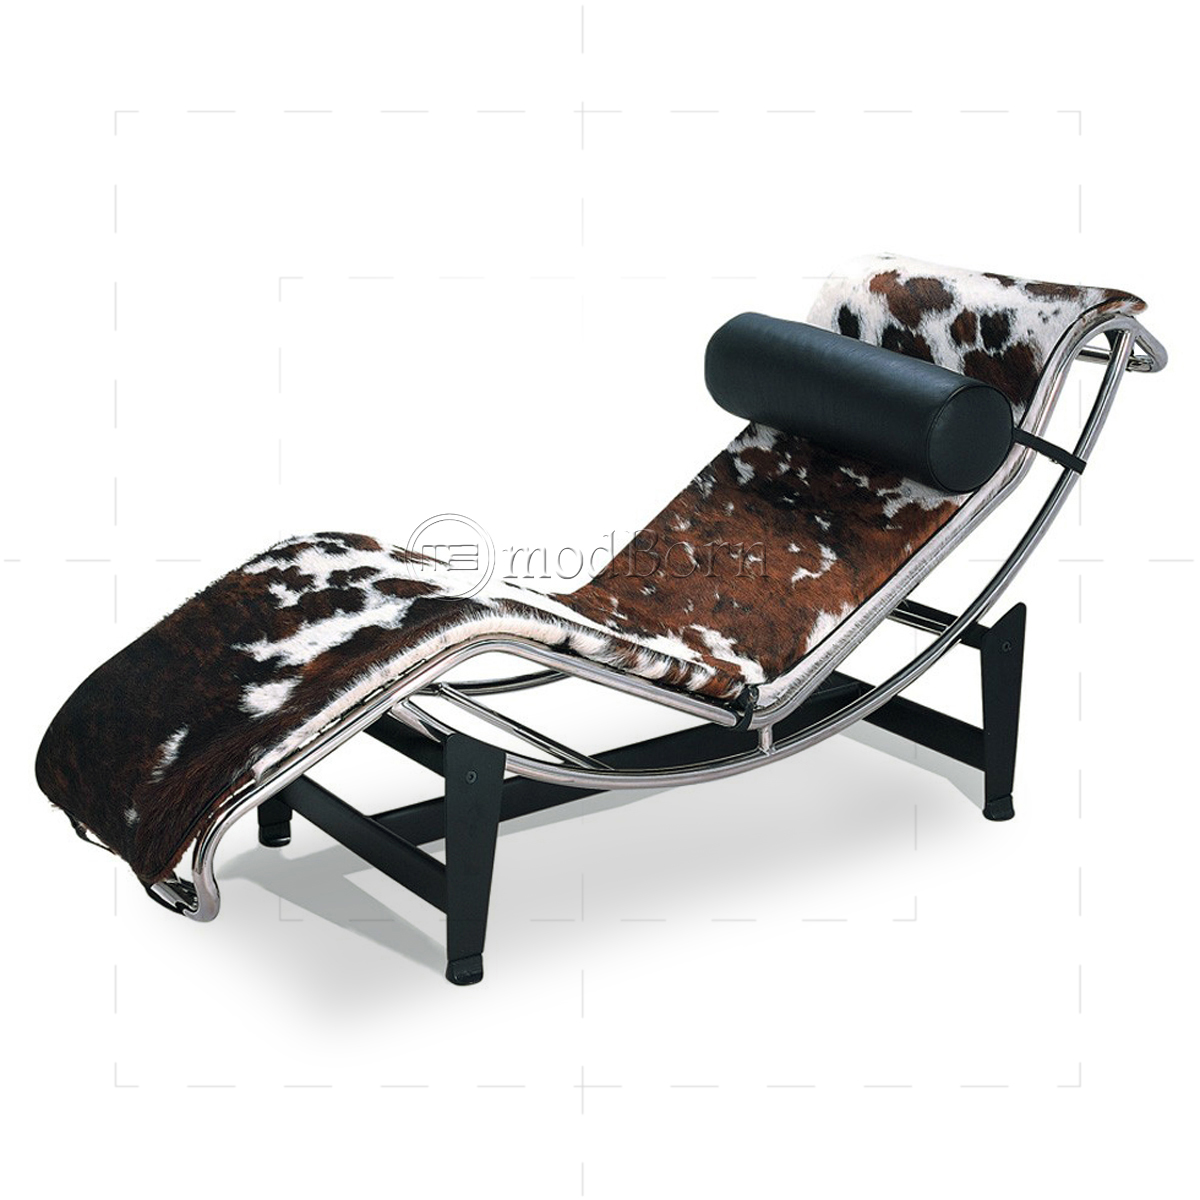 Le corbusier style lc4 chaise longue pony leather replica for Chaise longue by le corbusier